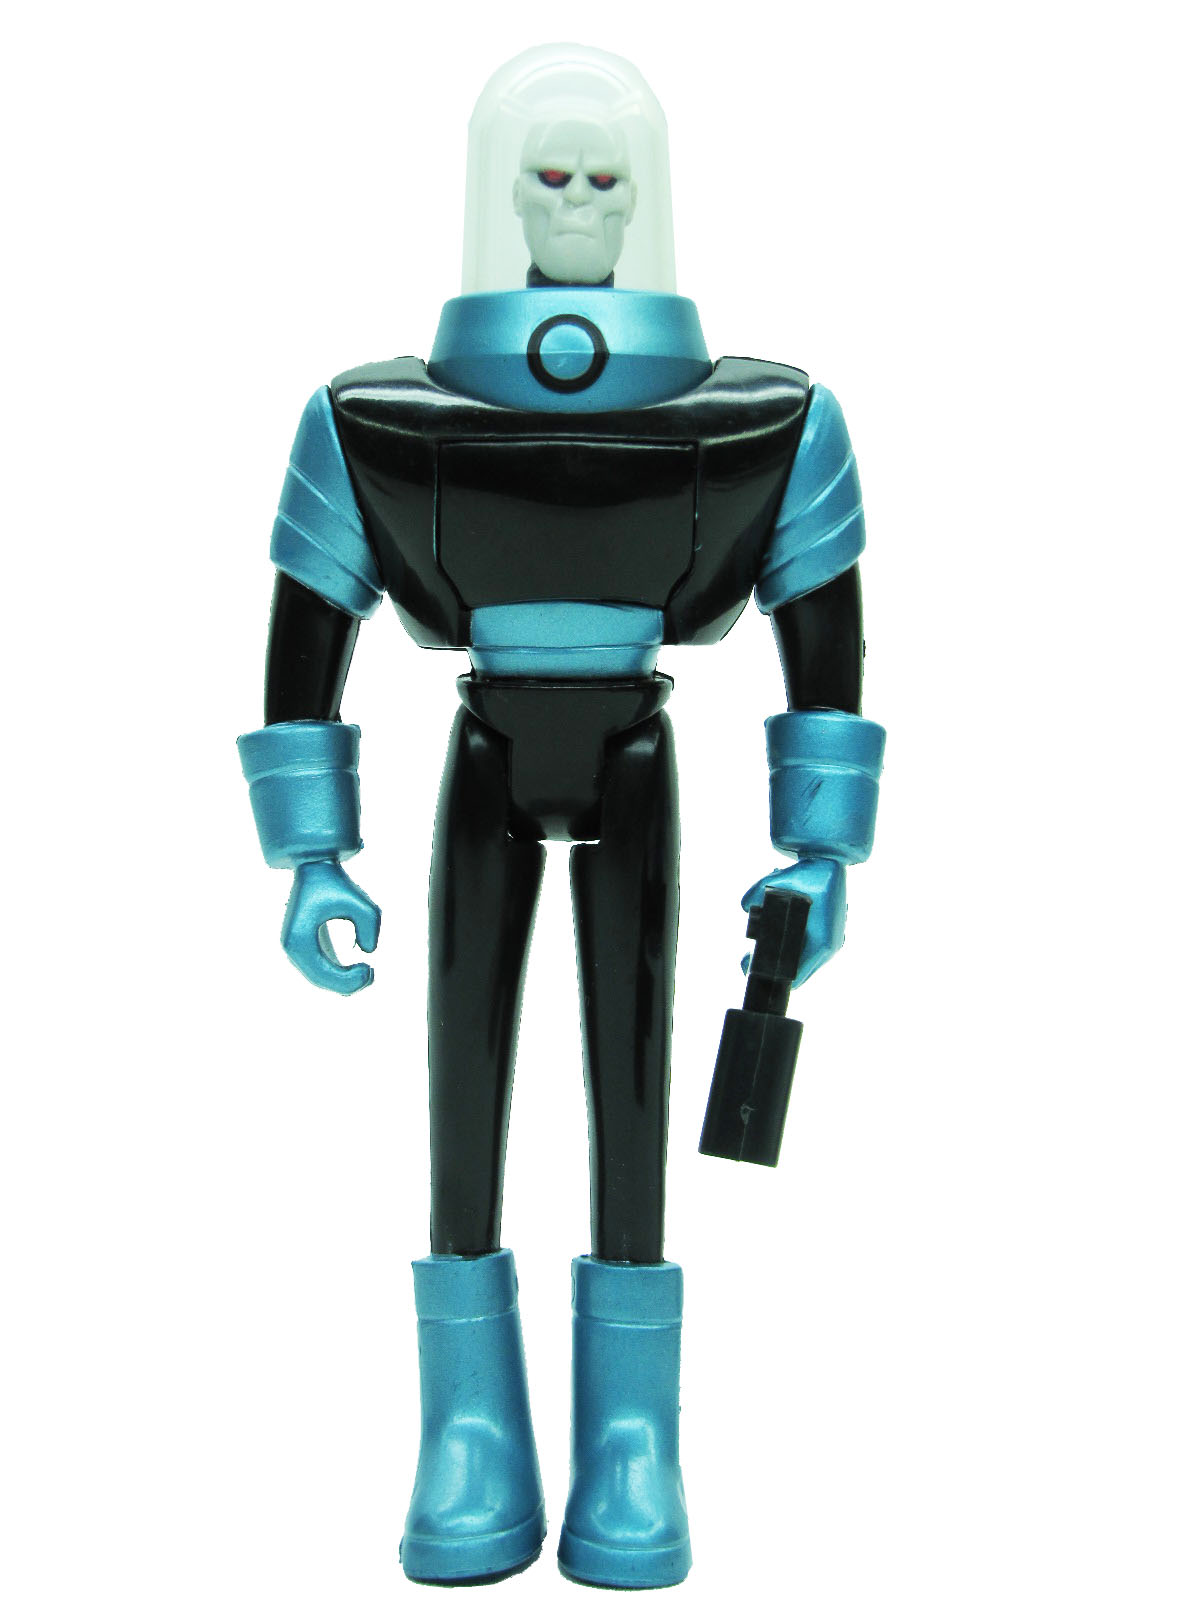 Batman The Animated Series Insect Body Mr. Freeze Complete